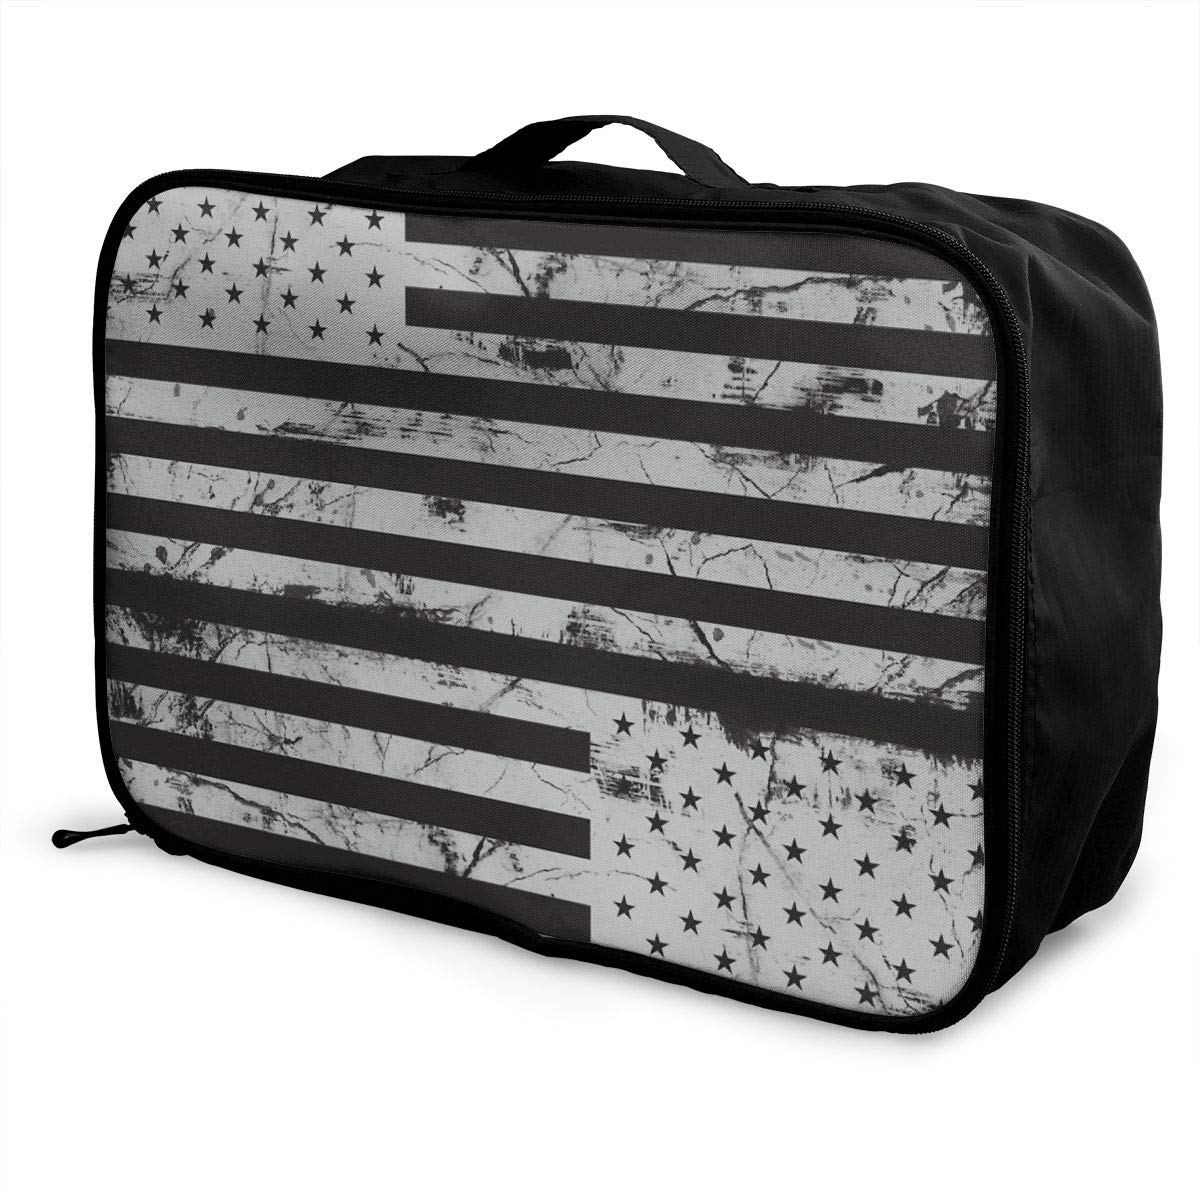 YueLJB Black USA Flag Lightweight Large Capacity Portable Luggage Bag Travel Duffel Bag Storage Carry Luggage Duffle Tote Bag